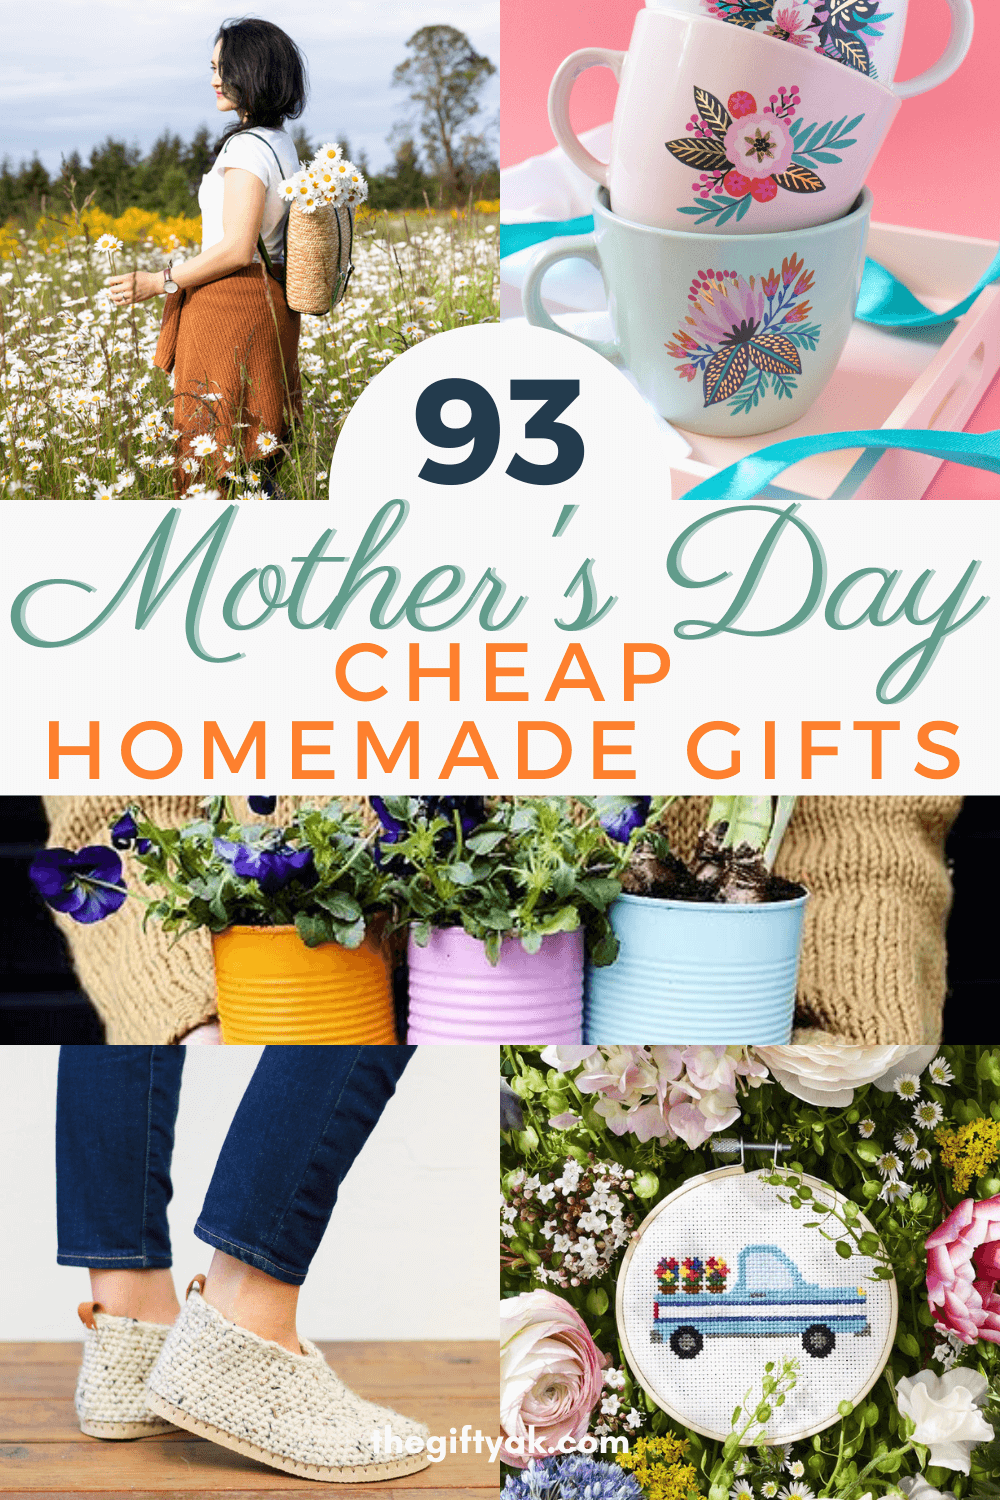 93 Cheap Mothers Day DIY Homemade Craft Gift Inspiration Pinterest How to Make Tutorial Guide